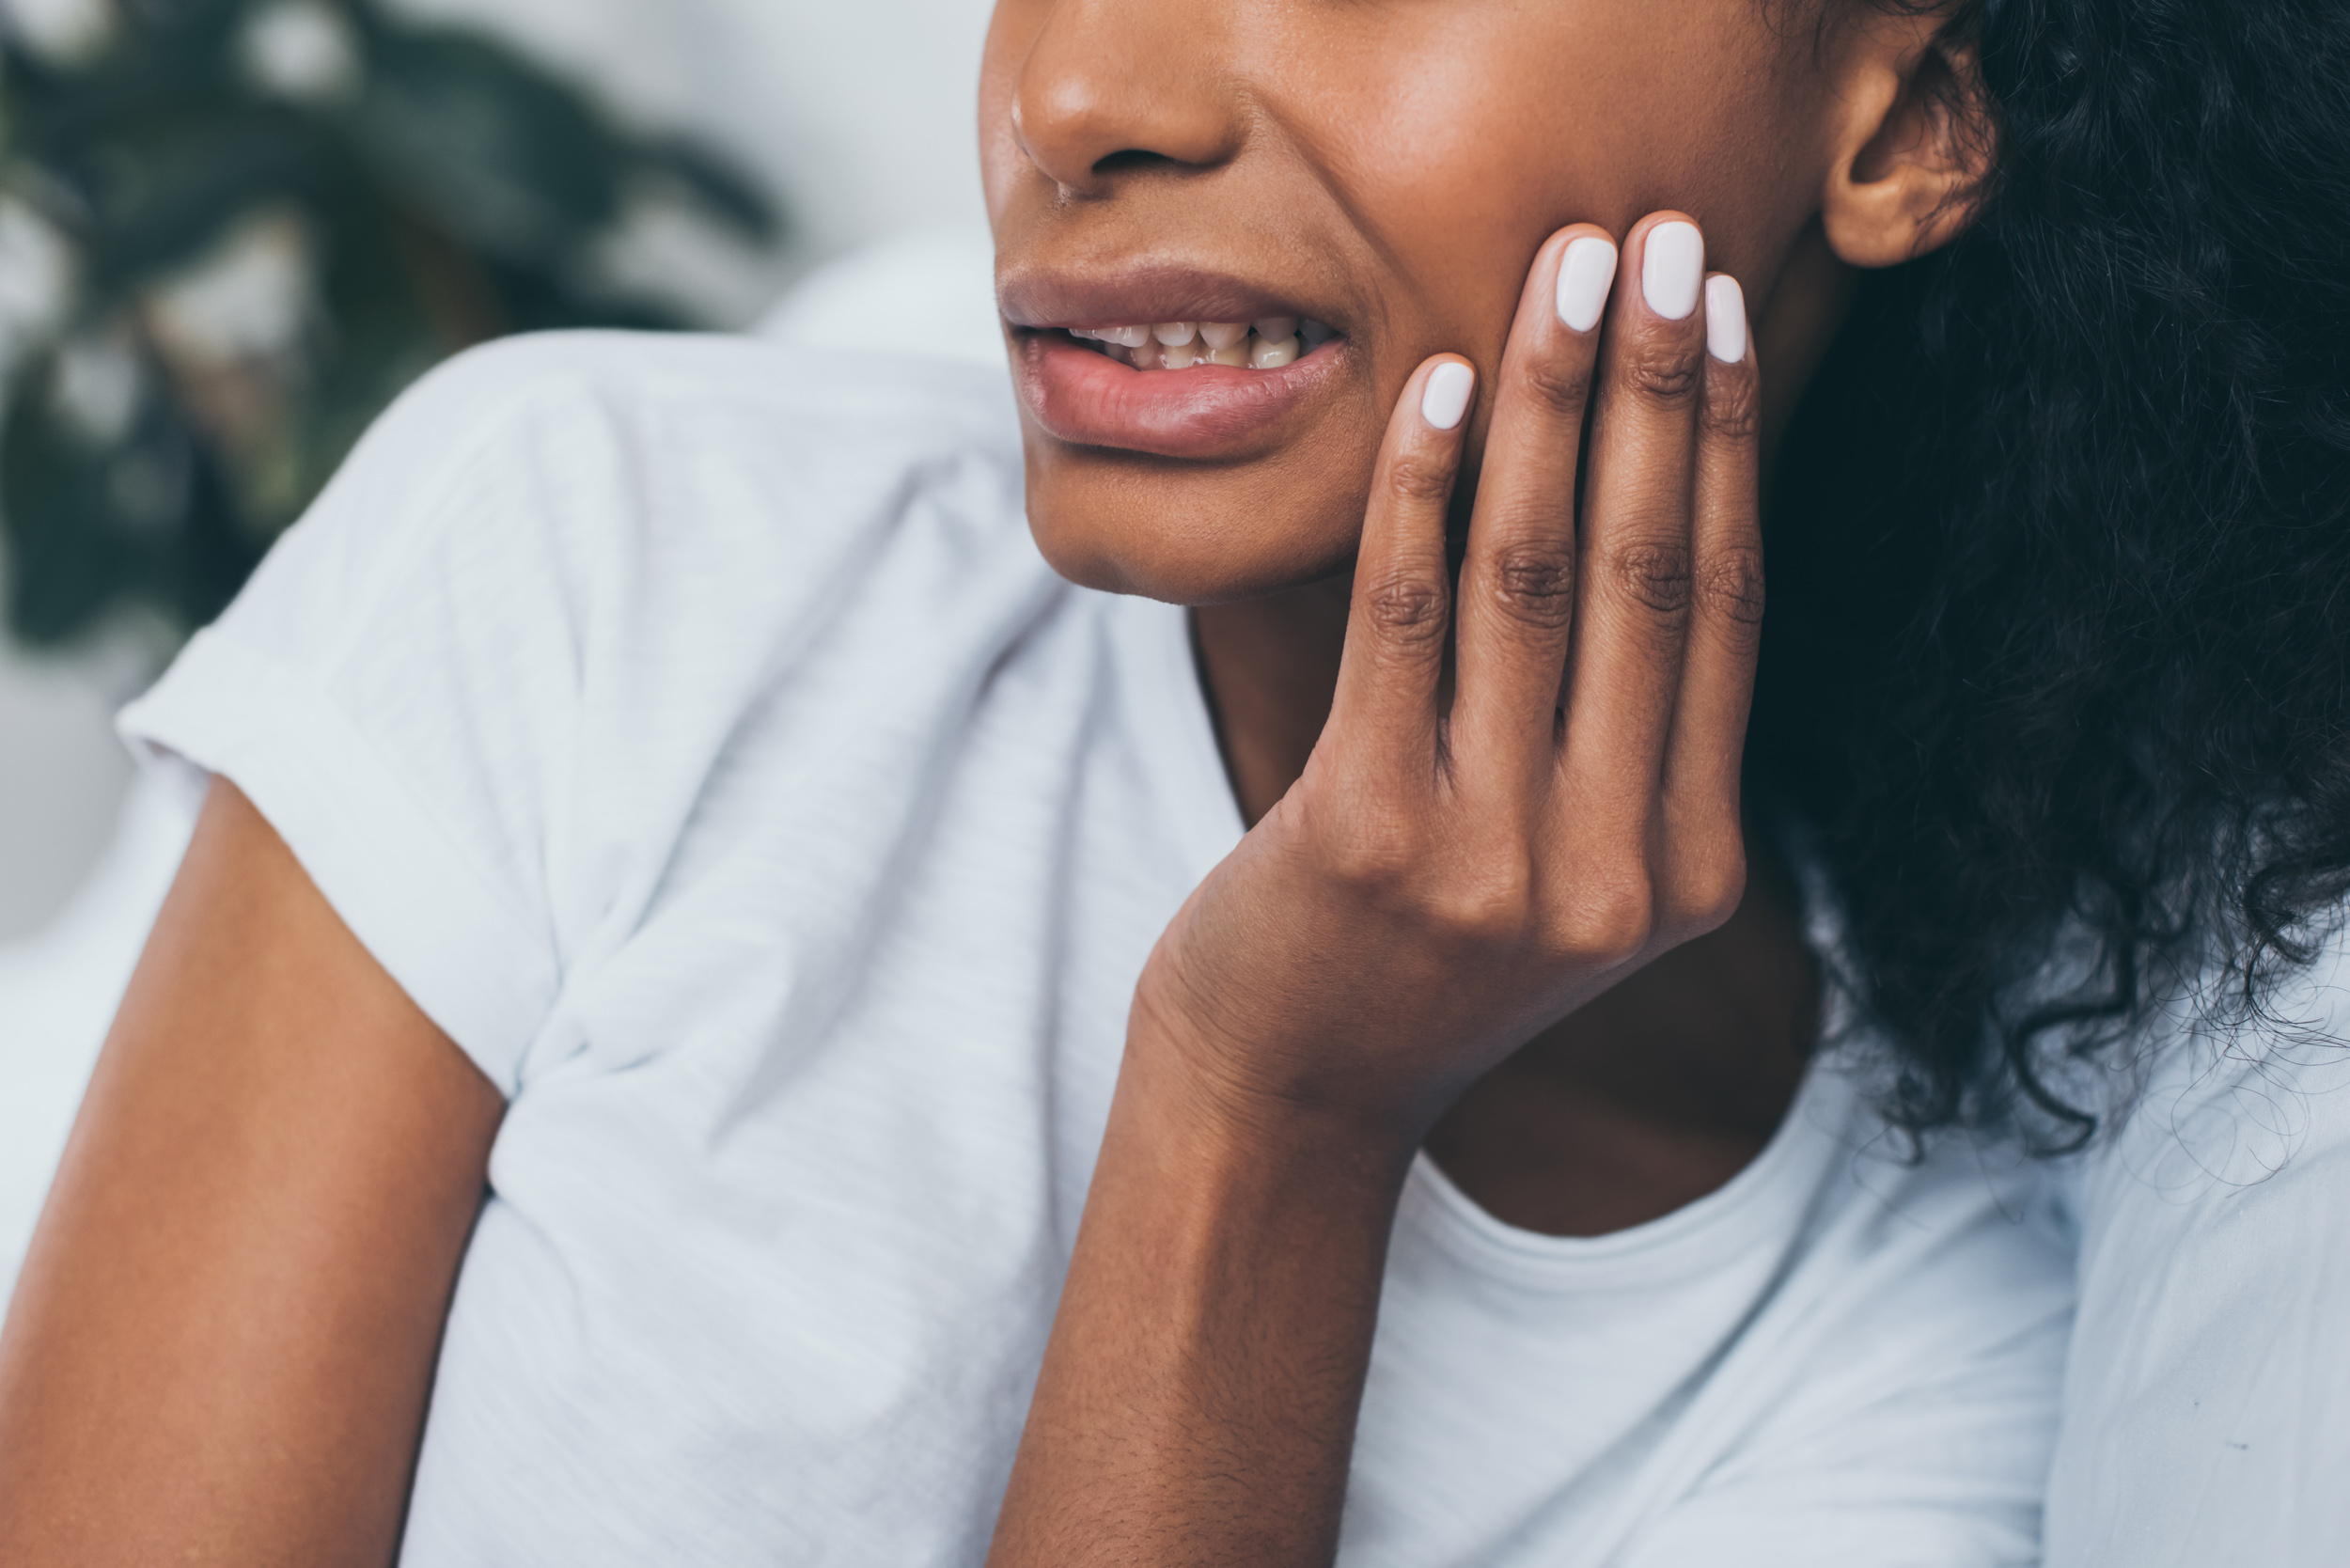 TMJ treatment options can relieve jaw pain